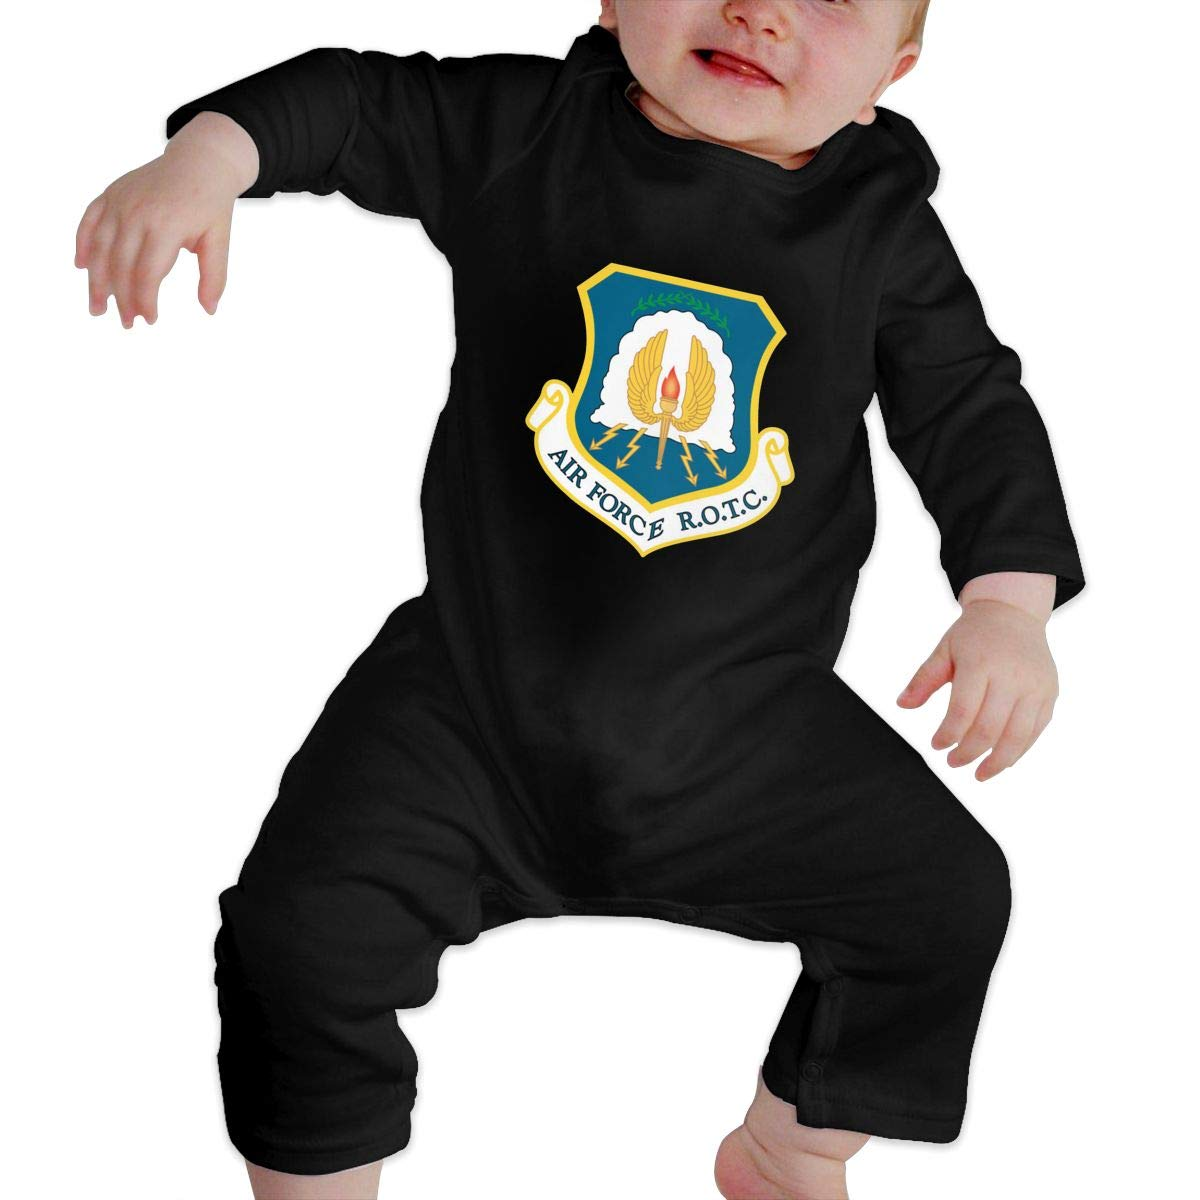 Gsaa Air Force ROTC Baby Long Sleeve Bodysuit Cotton Romper